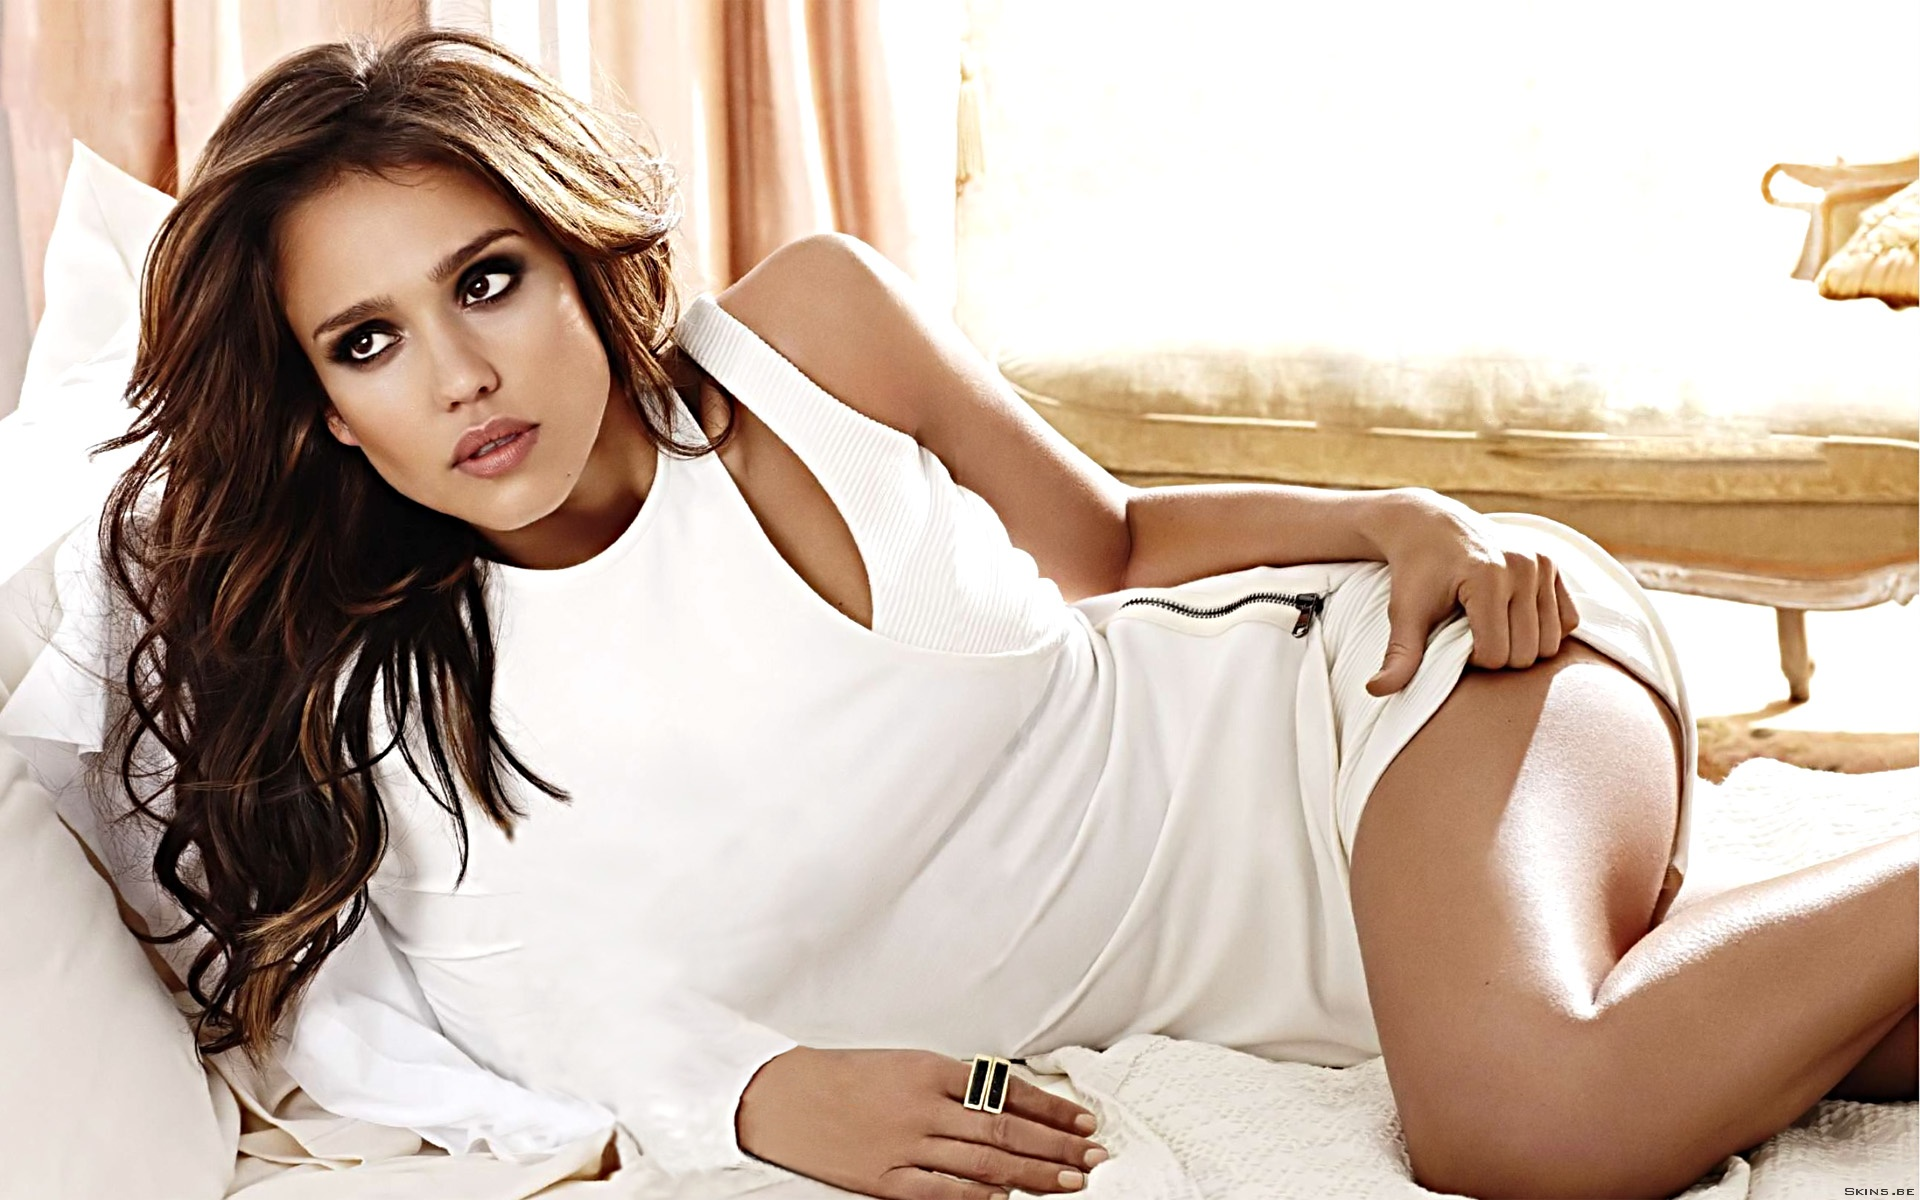 Sexy Jessica Alba Wallpaper Hd for PC (35)